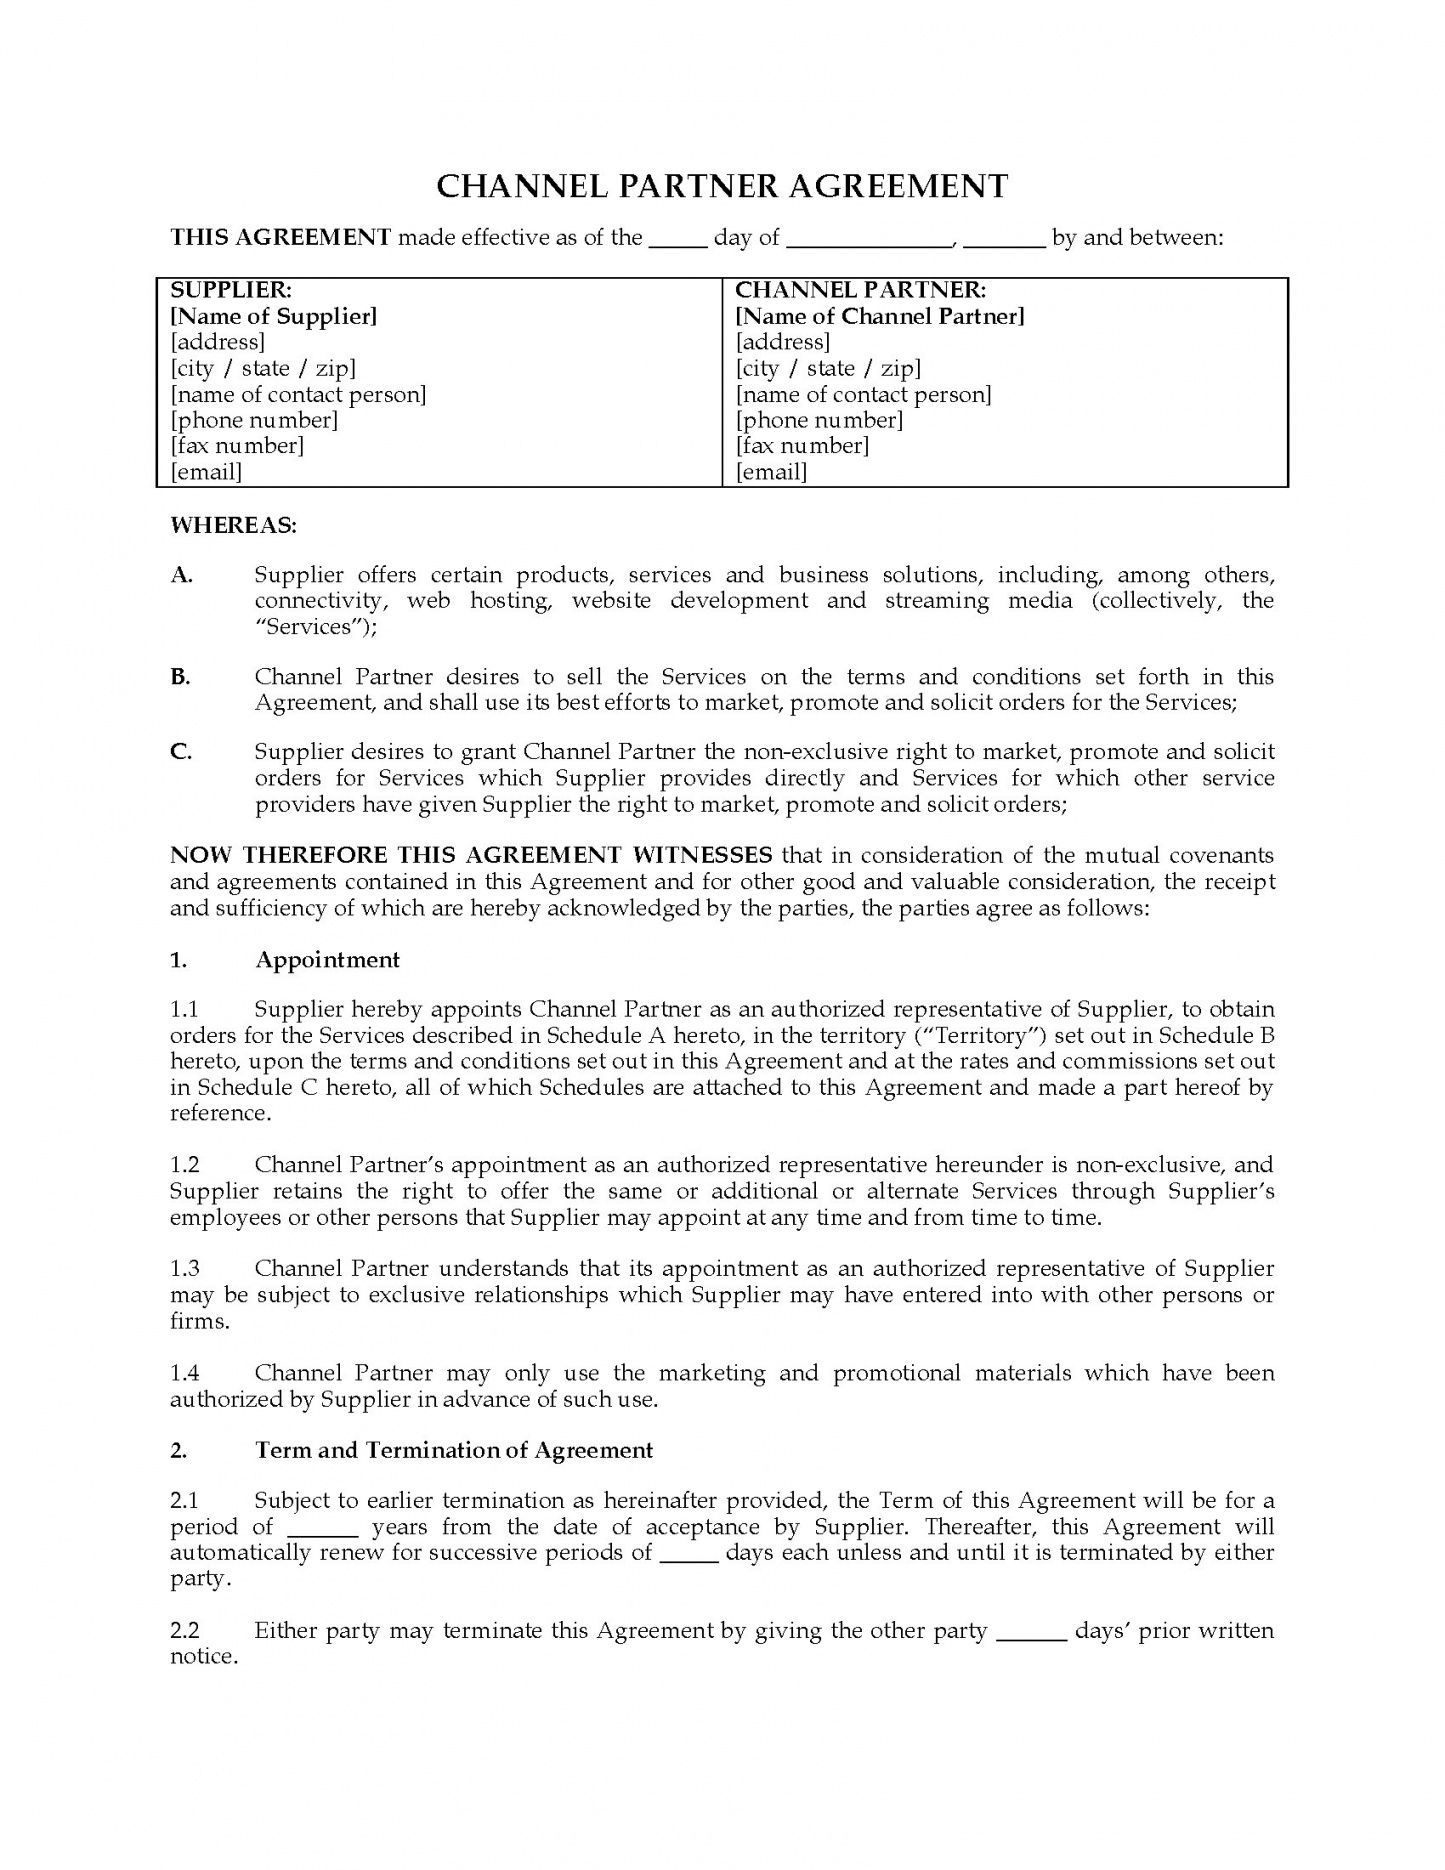 Get Our Example Of Channel Partner Agreement Template Agreement Being A Landlord Channel